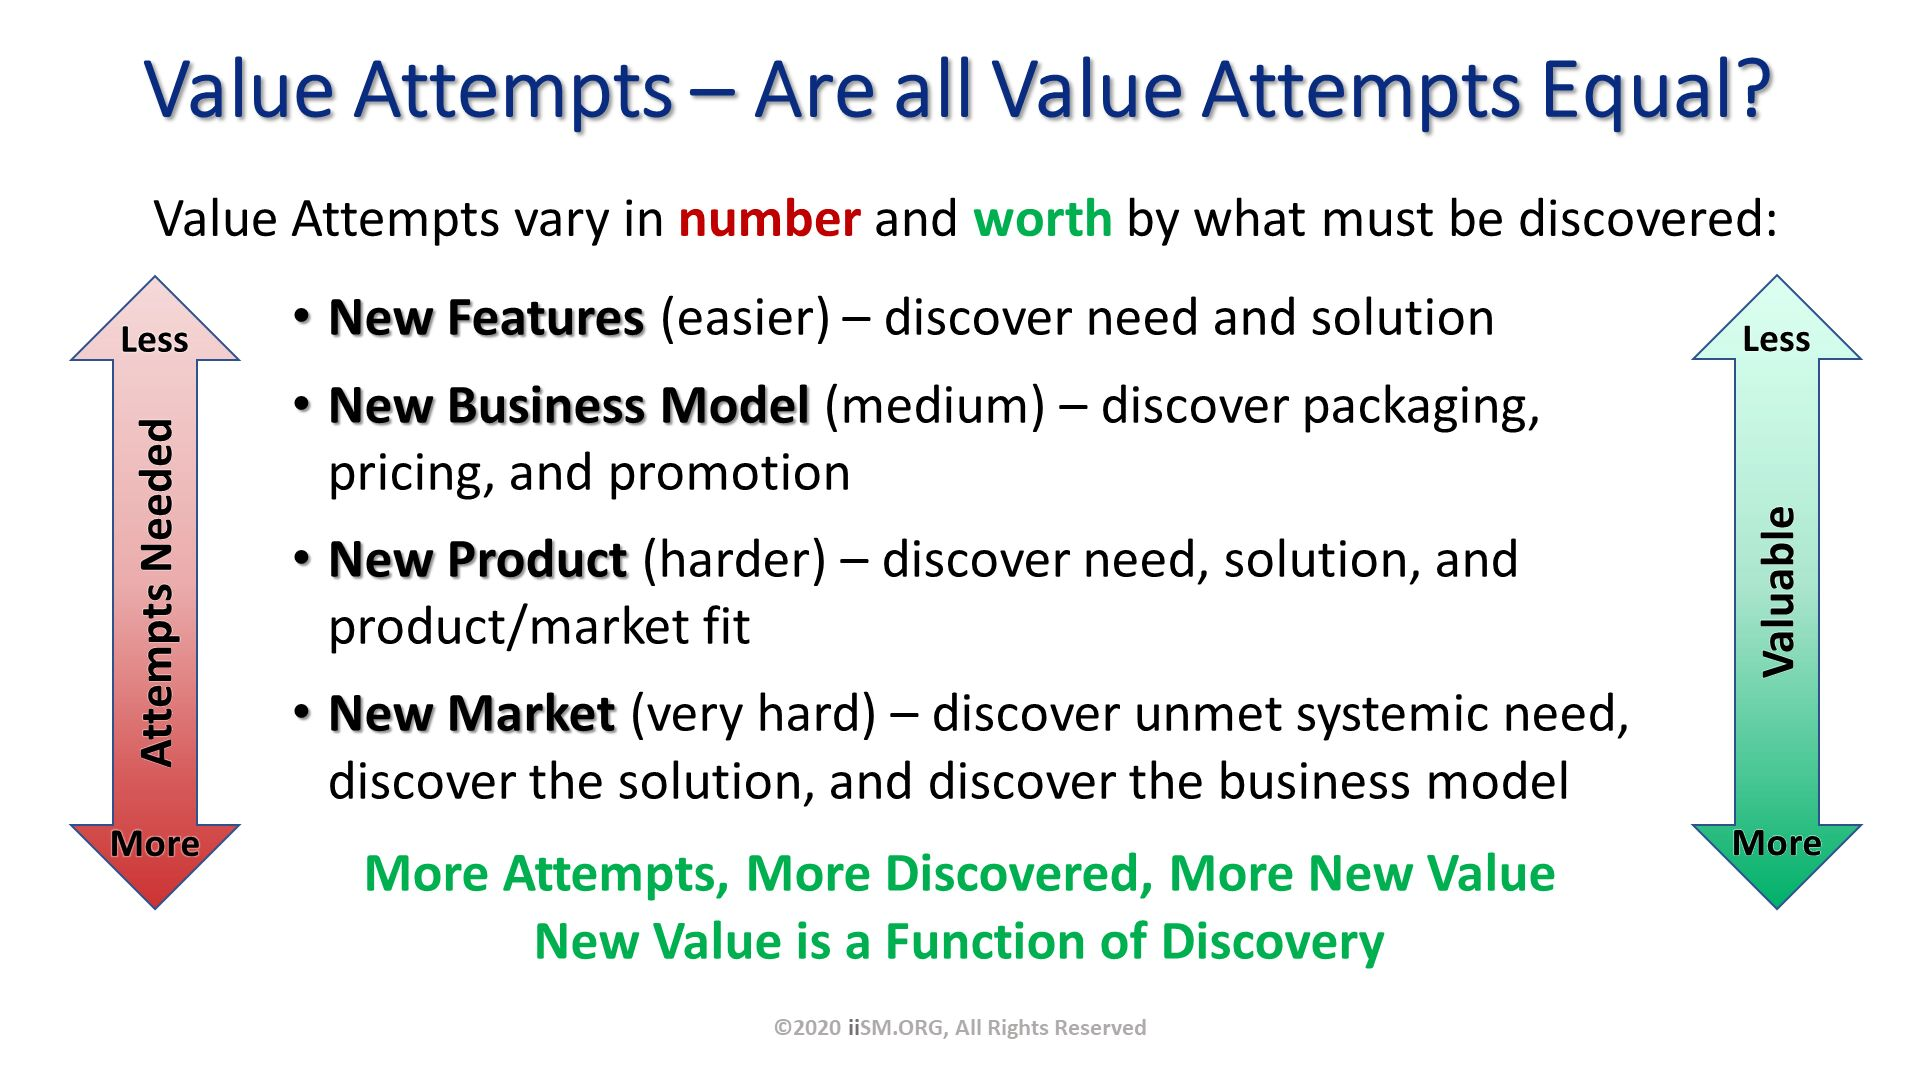 Value Attempts – Are all Value Attempts Equal?. Value Attempts vary in number and worth by what must be discovered:. ©2020 iiSM.ORG, All Rights Reserved. Attempts Needed. Less . More . New Features (easier) – discover need and solution New Business Model (medium) – discover packaging, pricing, and promotion New Product (harder) – discover need, solution, and product/market fit New Market (very hard) – discover unmet systemic need,discover the solution, and discover the business model    . More Attempts, More Discovered, More New Value New Value is a Function of Discovery.